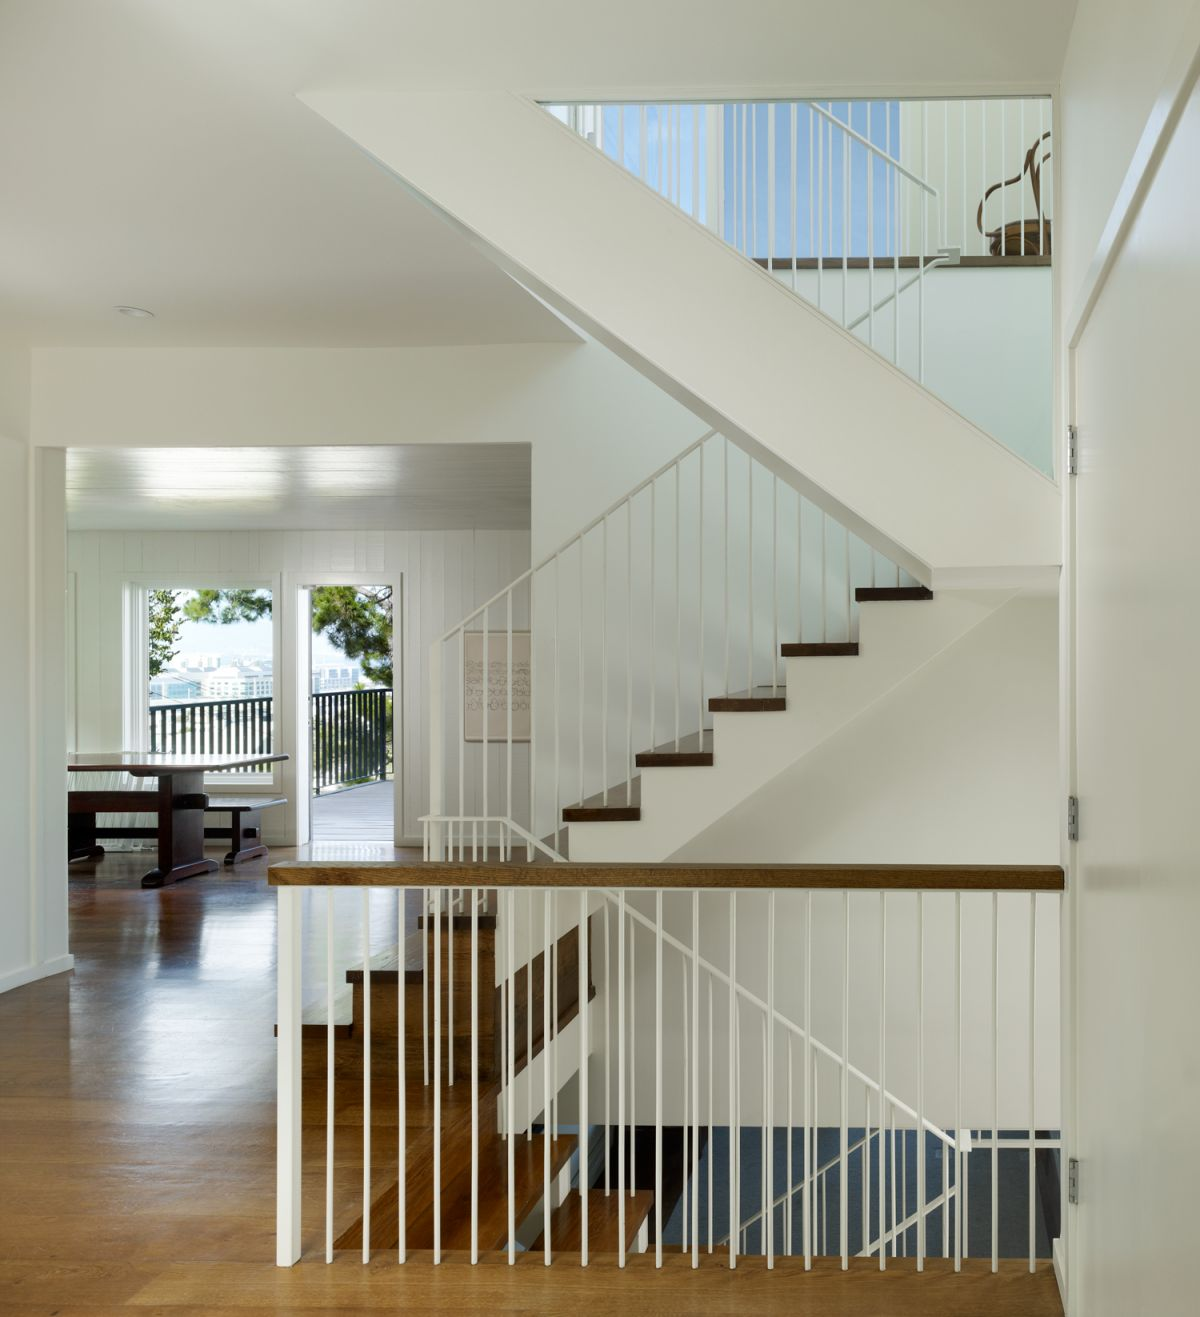 Incroyable Potrero House   Stair Case By Cary Bernstein. «